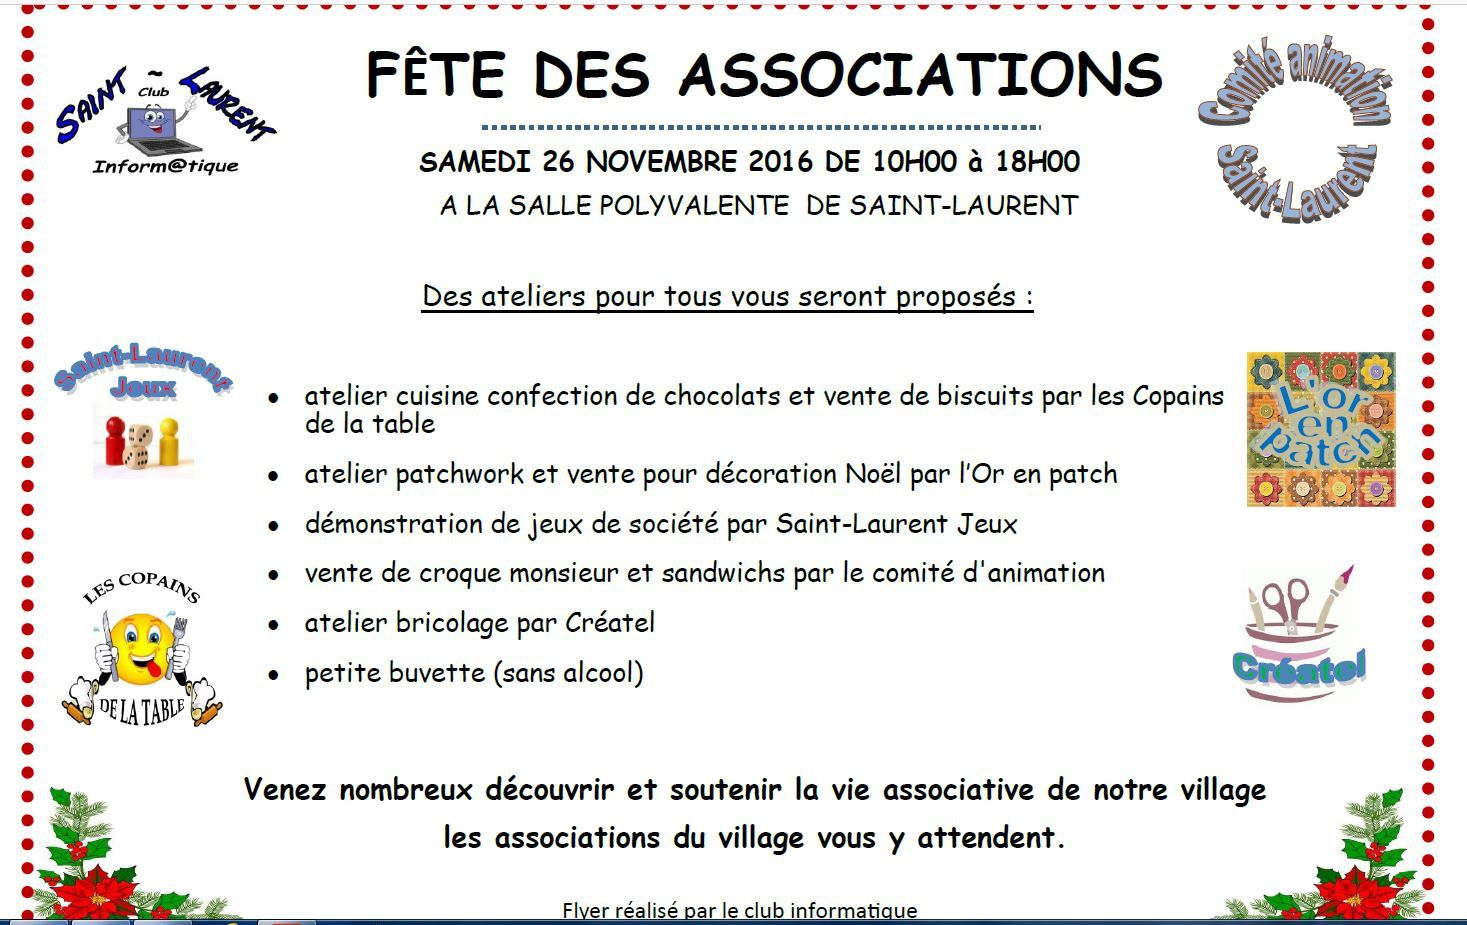 Saint-Laurent - Fête des associations